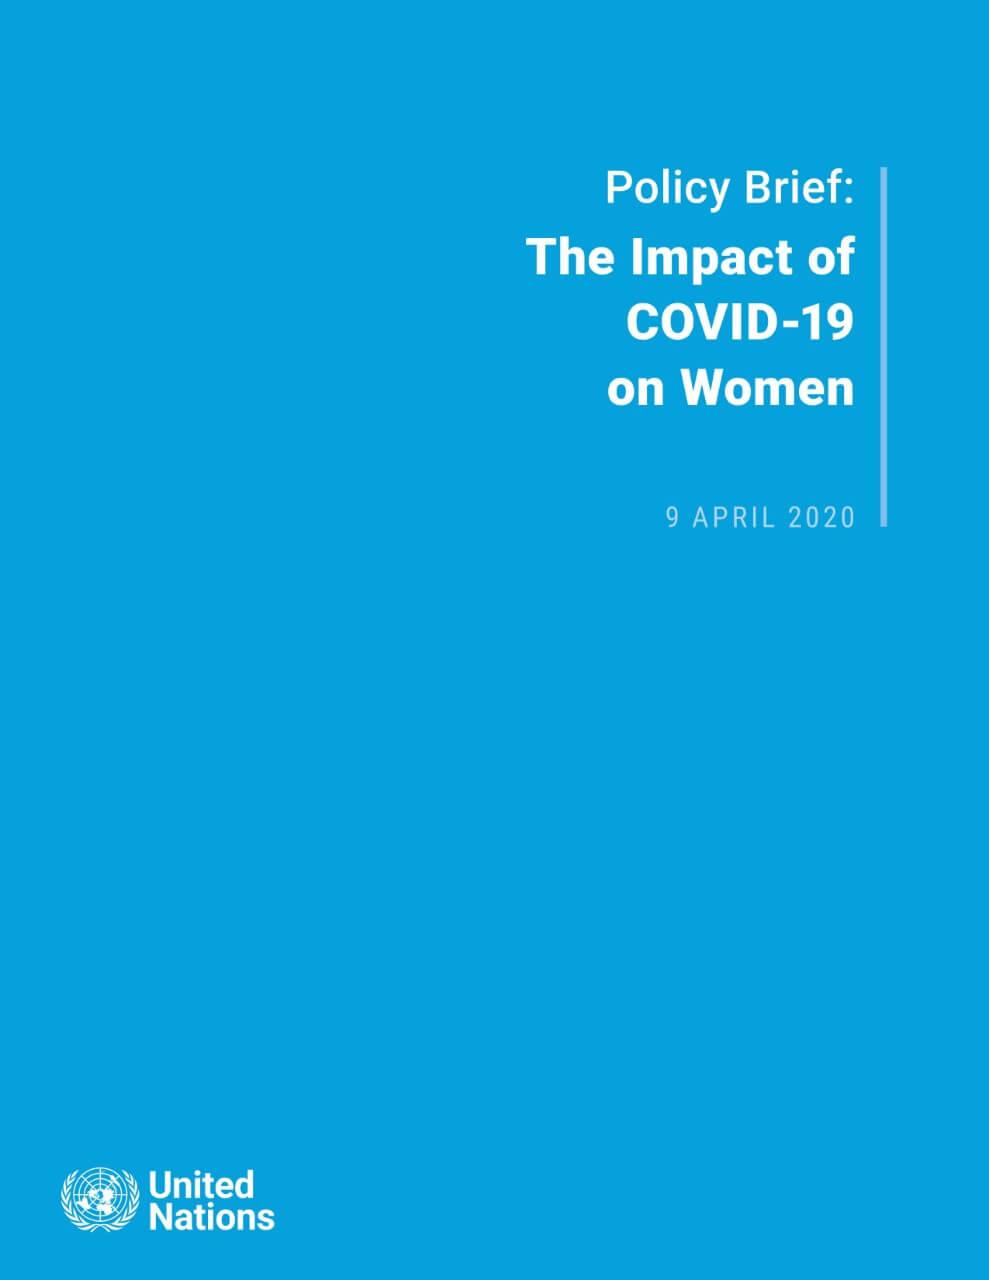 Policy brief: The impact of COVID-19 on women